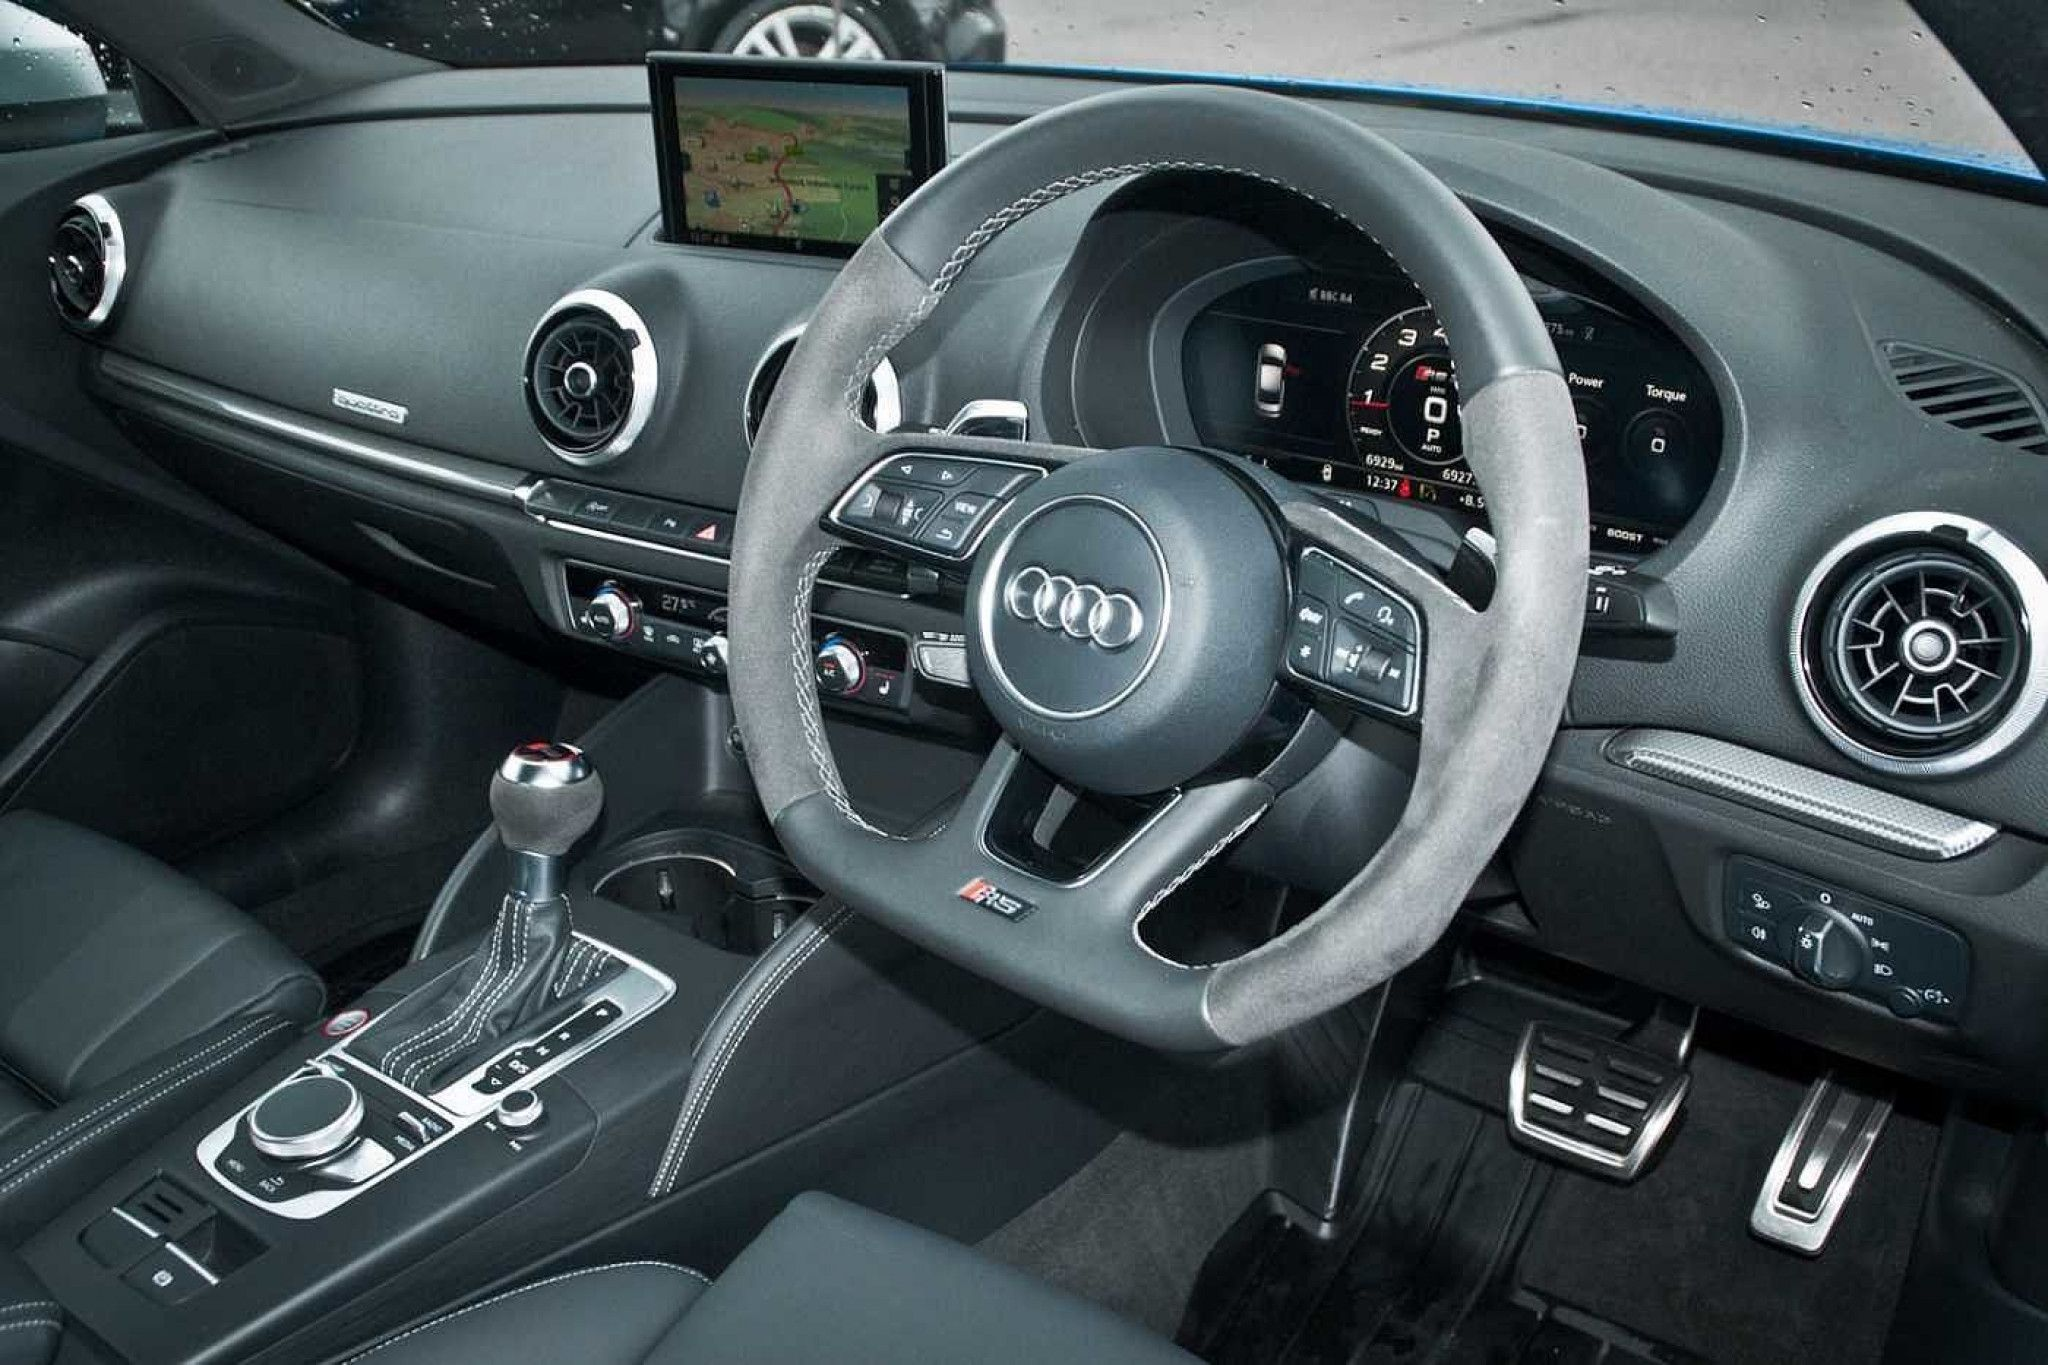 Audi Rs3 2 5 Tfsi Rs 3 Quattro 4dr S Tronic In 2020 Audi Rs3 Audi A3 Audi